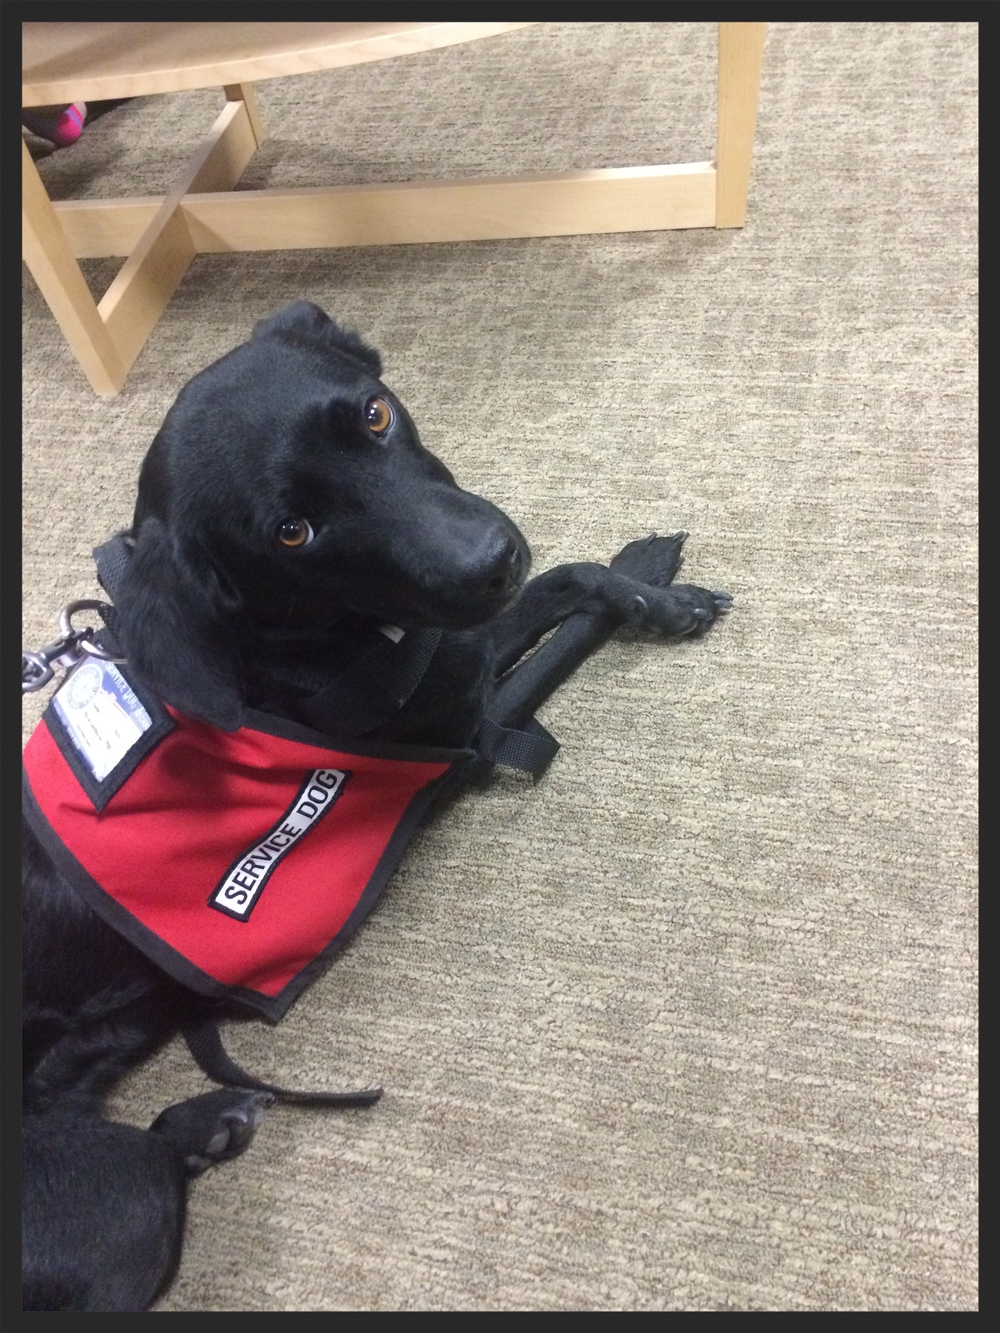 Sadie the service dog posing primly on the job. Submitted by Sammy431.